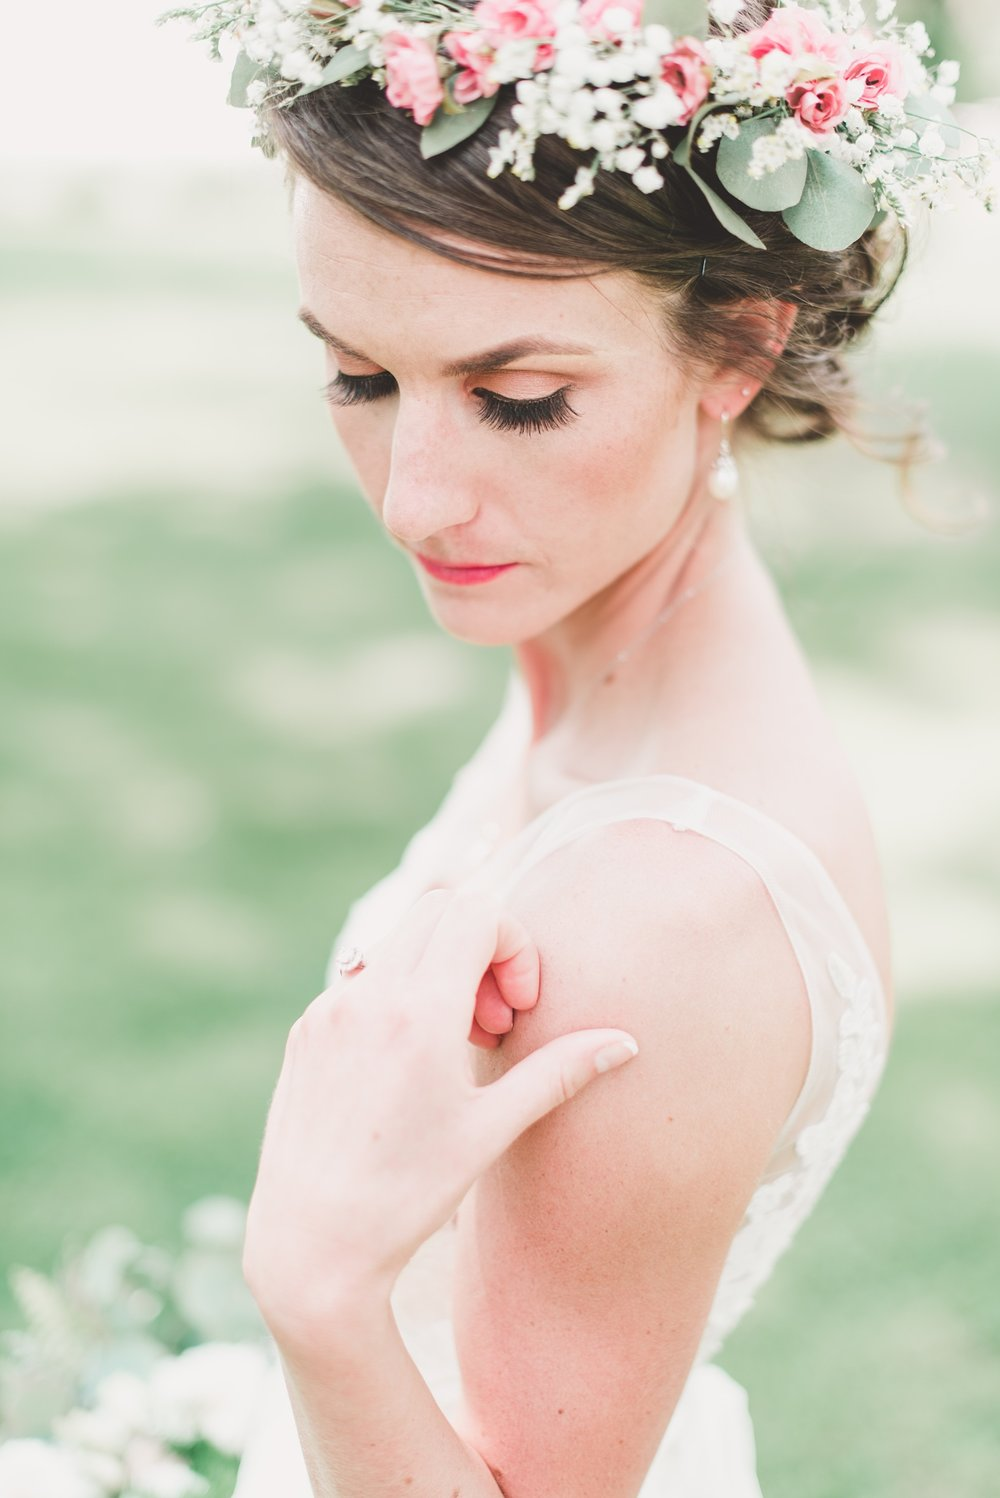 light and airy photo of a bride in a flower crown